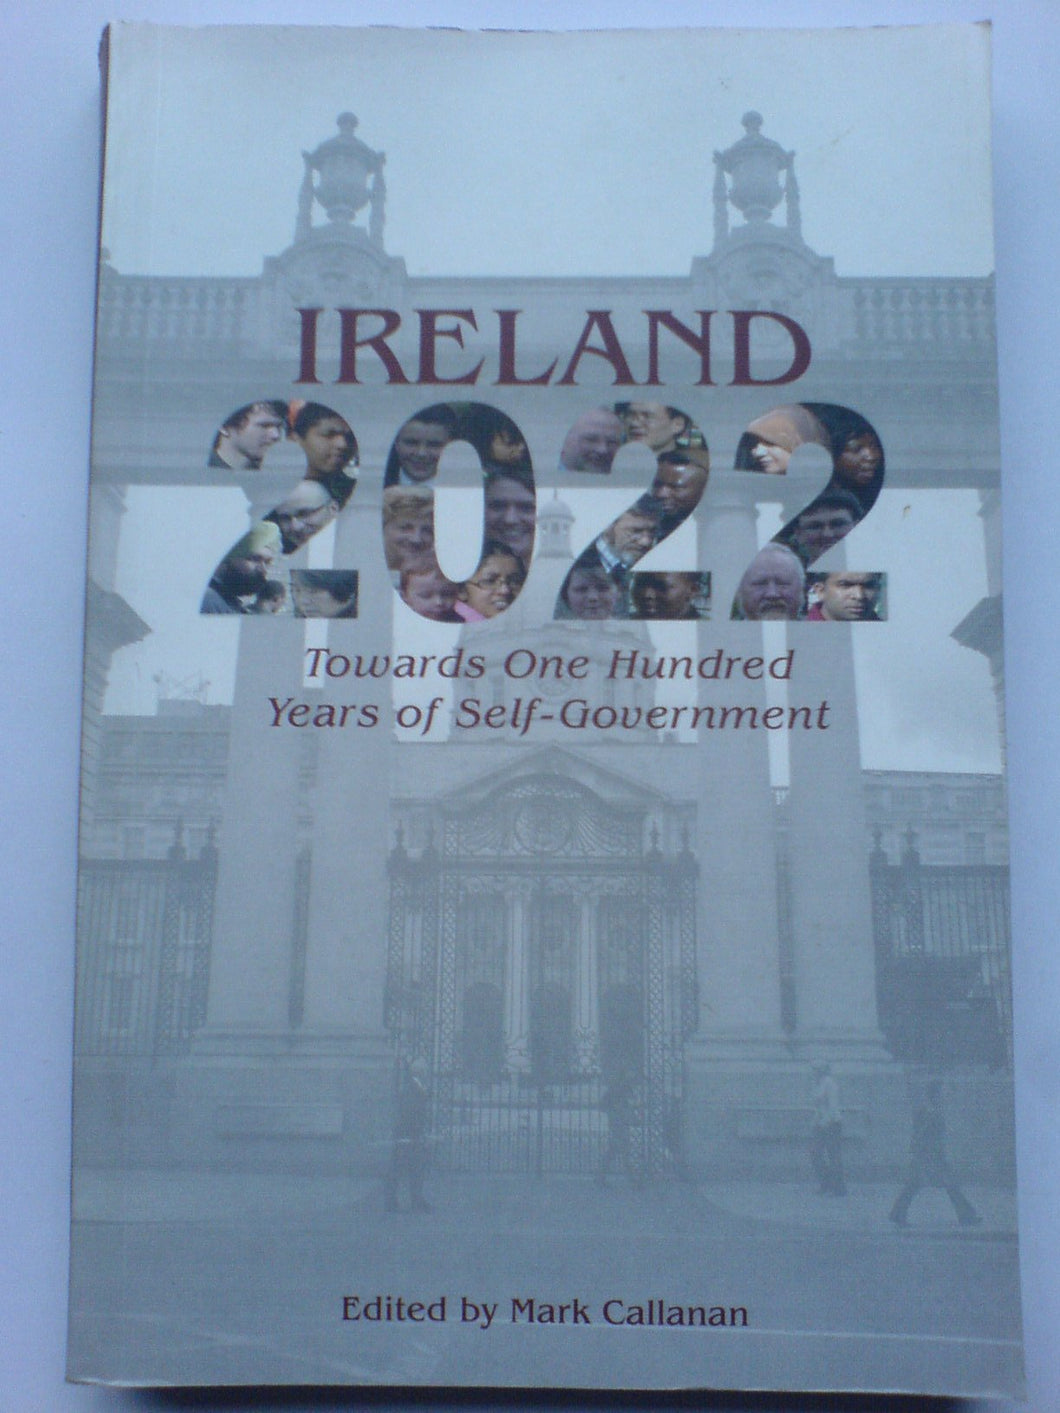 Ireland 2022: Towards One Hundred Years of Self-Government